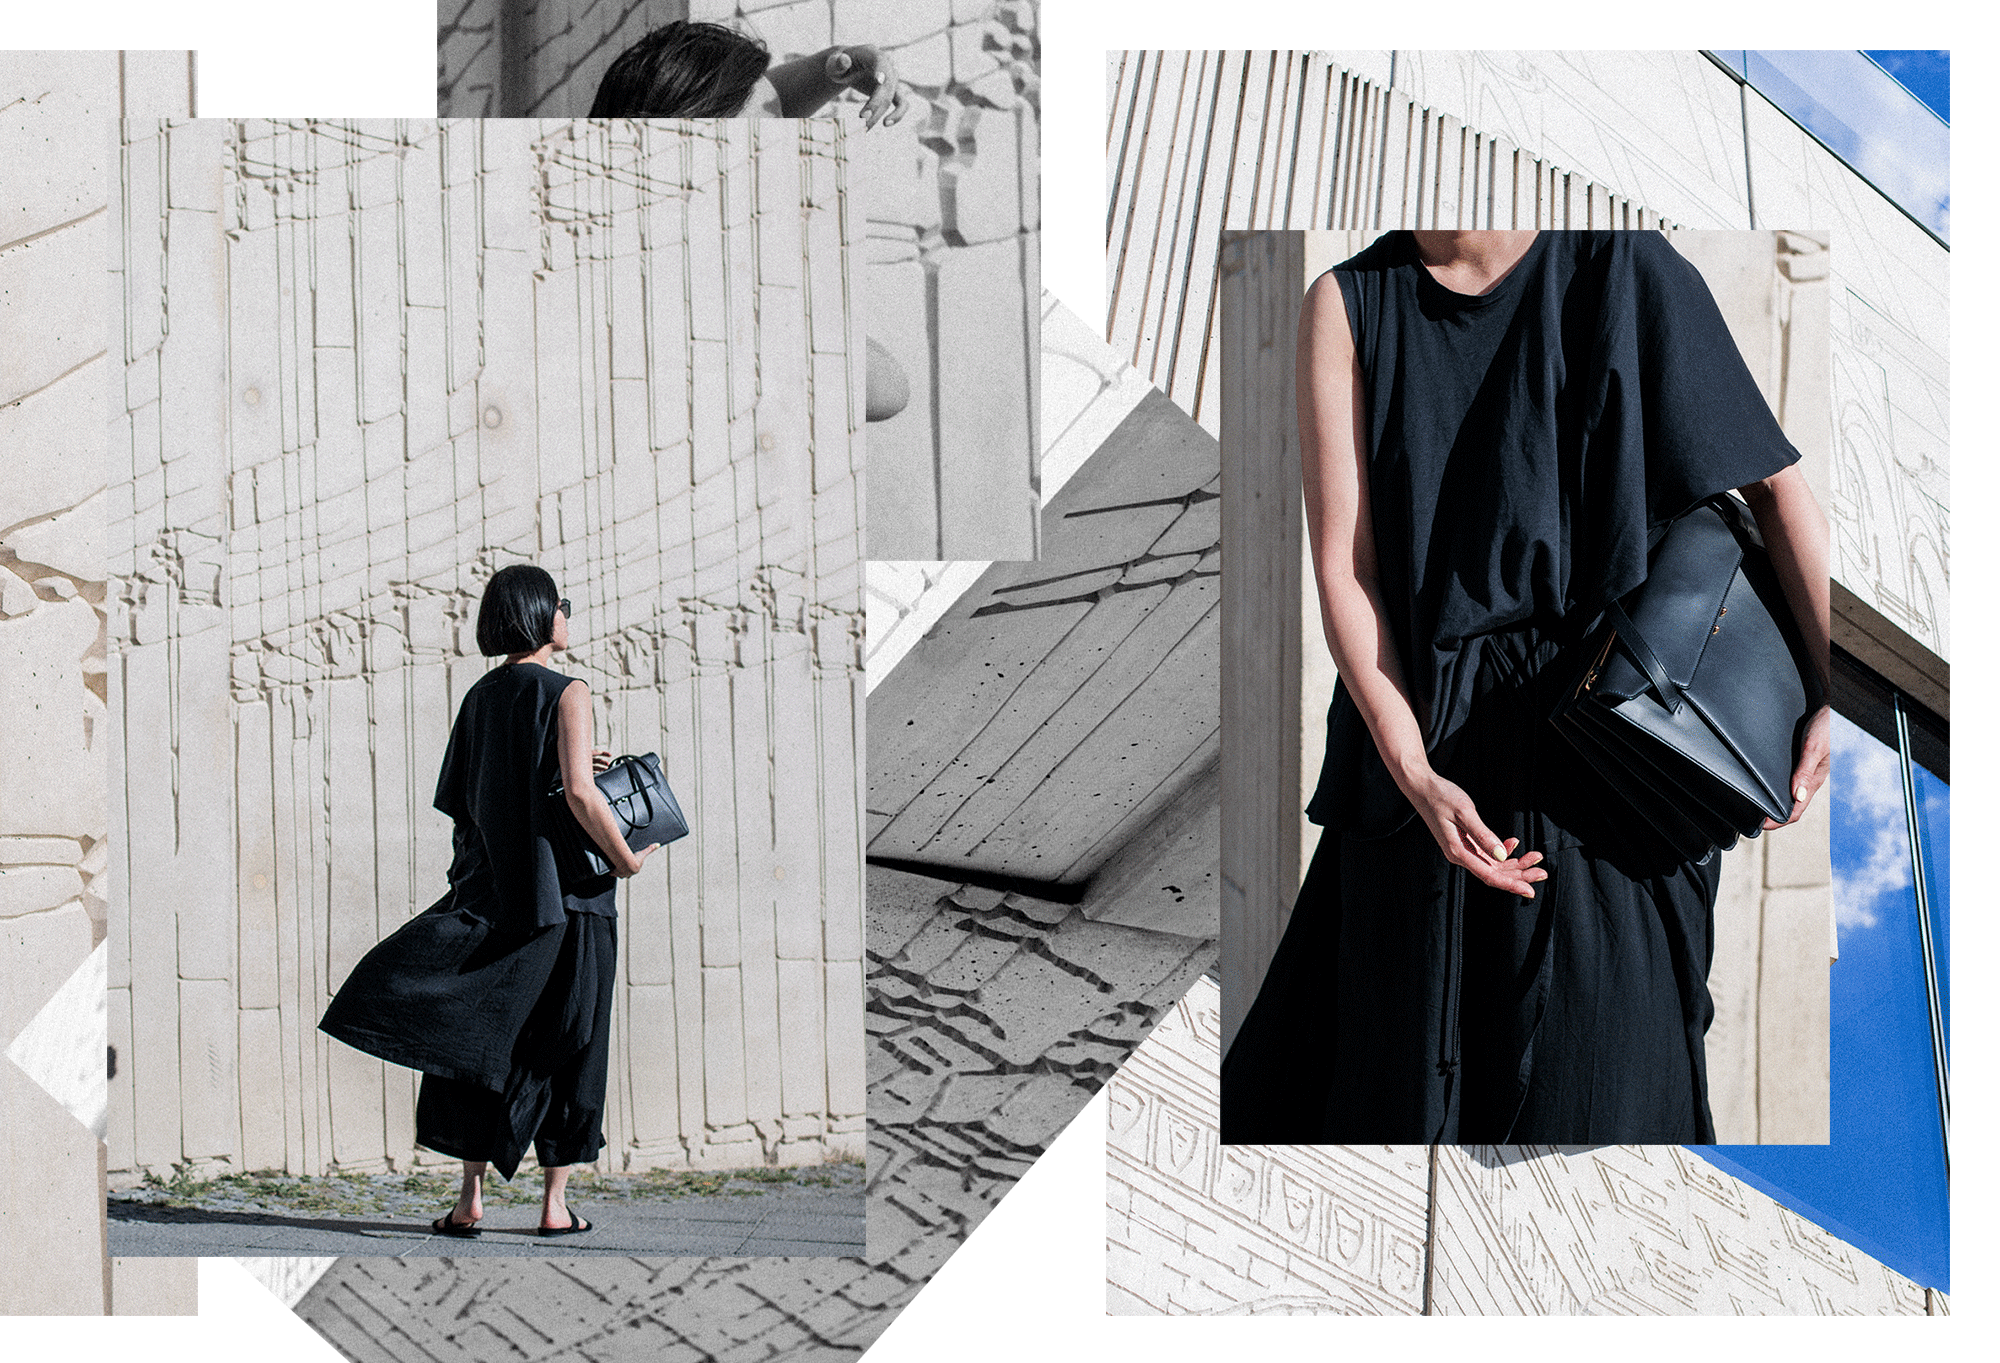 MM6 Top, Yohji Yamamoto Black Skirt Trousers, Marni Origami Trunk Bag - All Black Everything Summer Look by IheartAlice.com / Alice M. Huynh